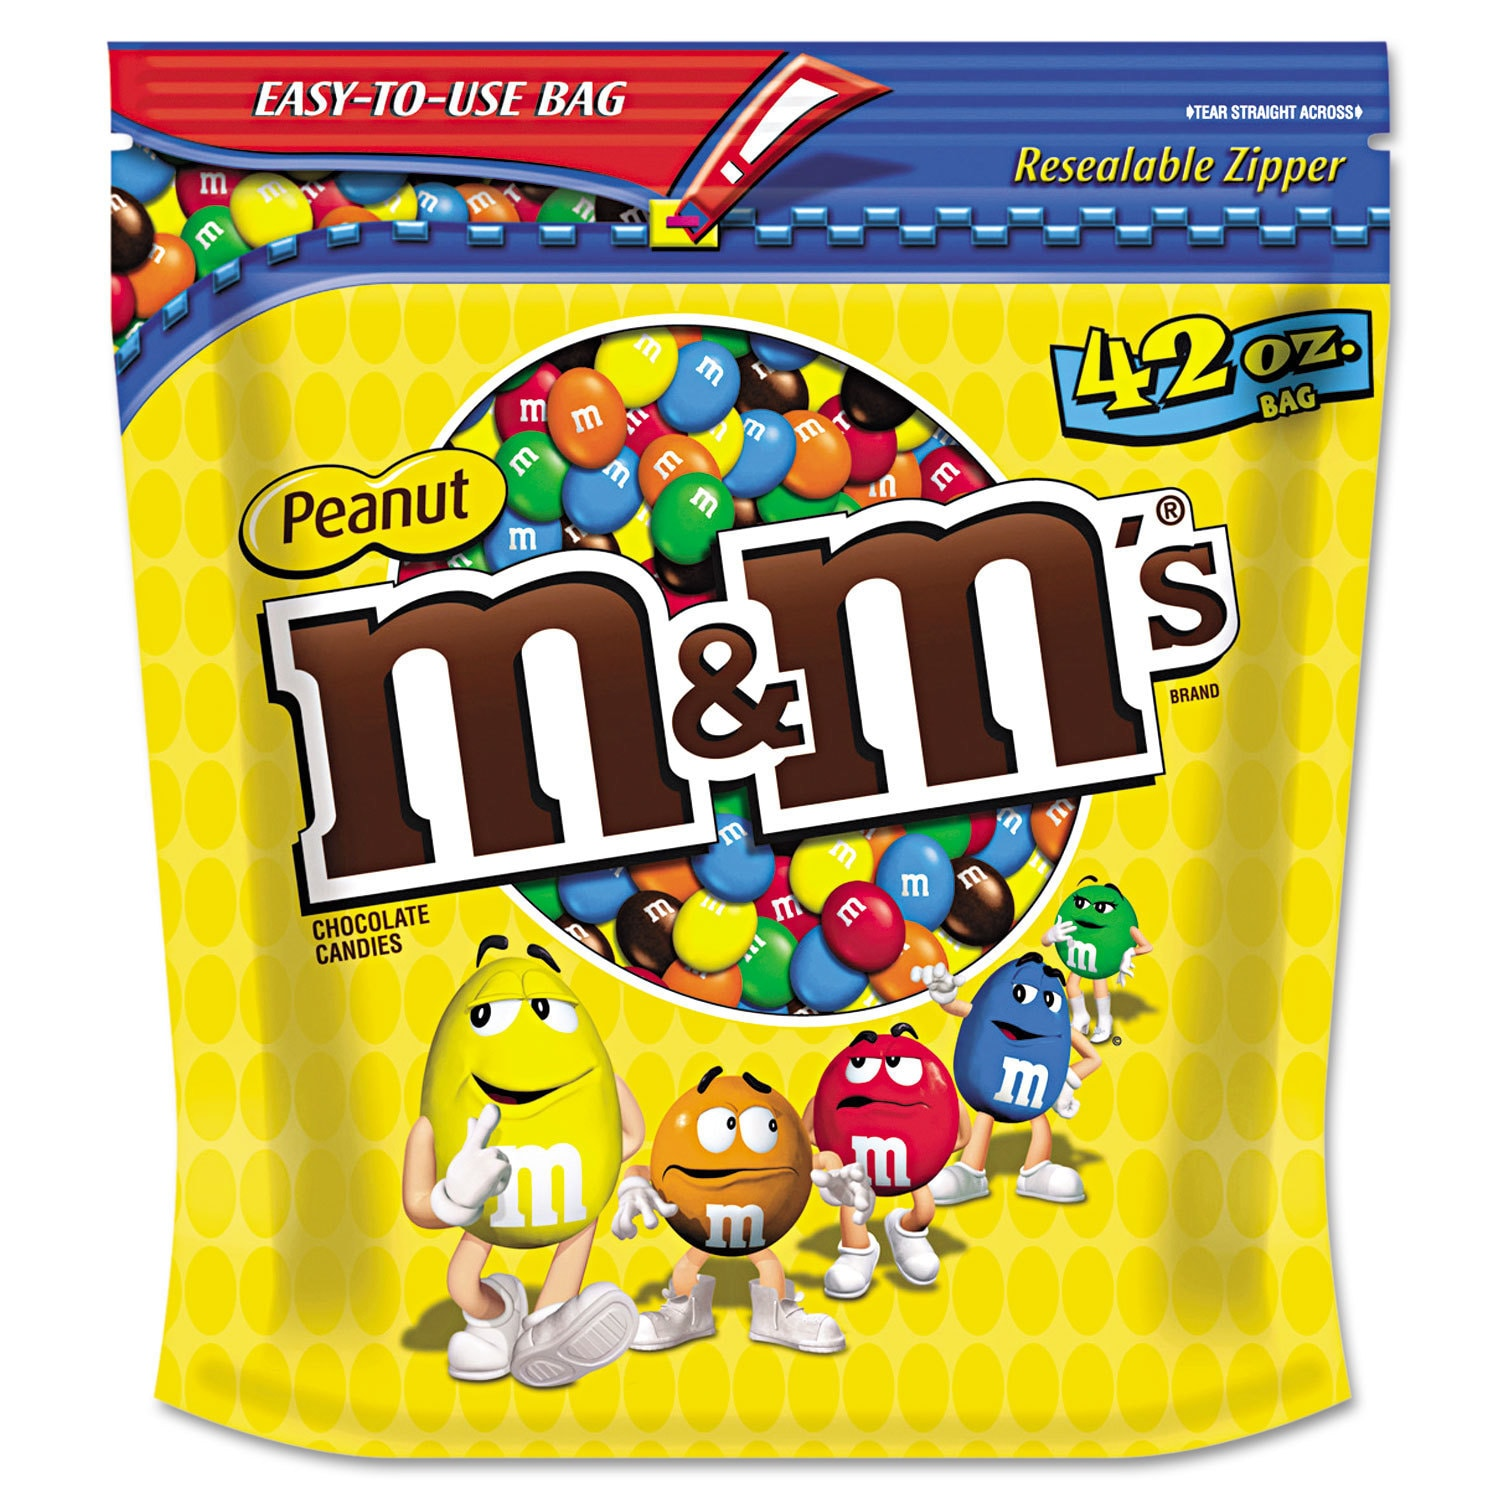 M&M's Milk Chocolate (Brown) Coated Candy with Peanut Cen...